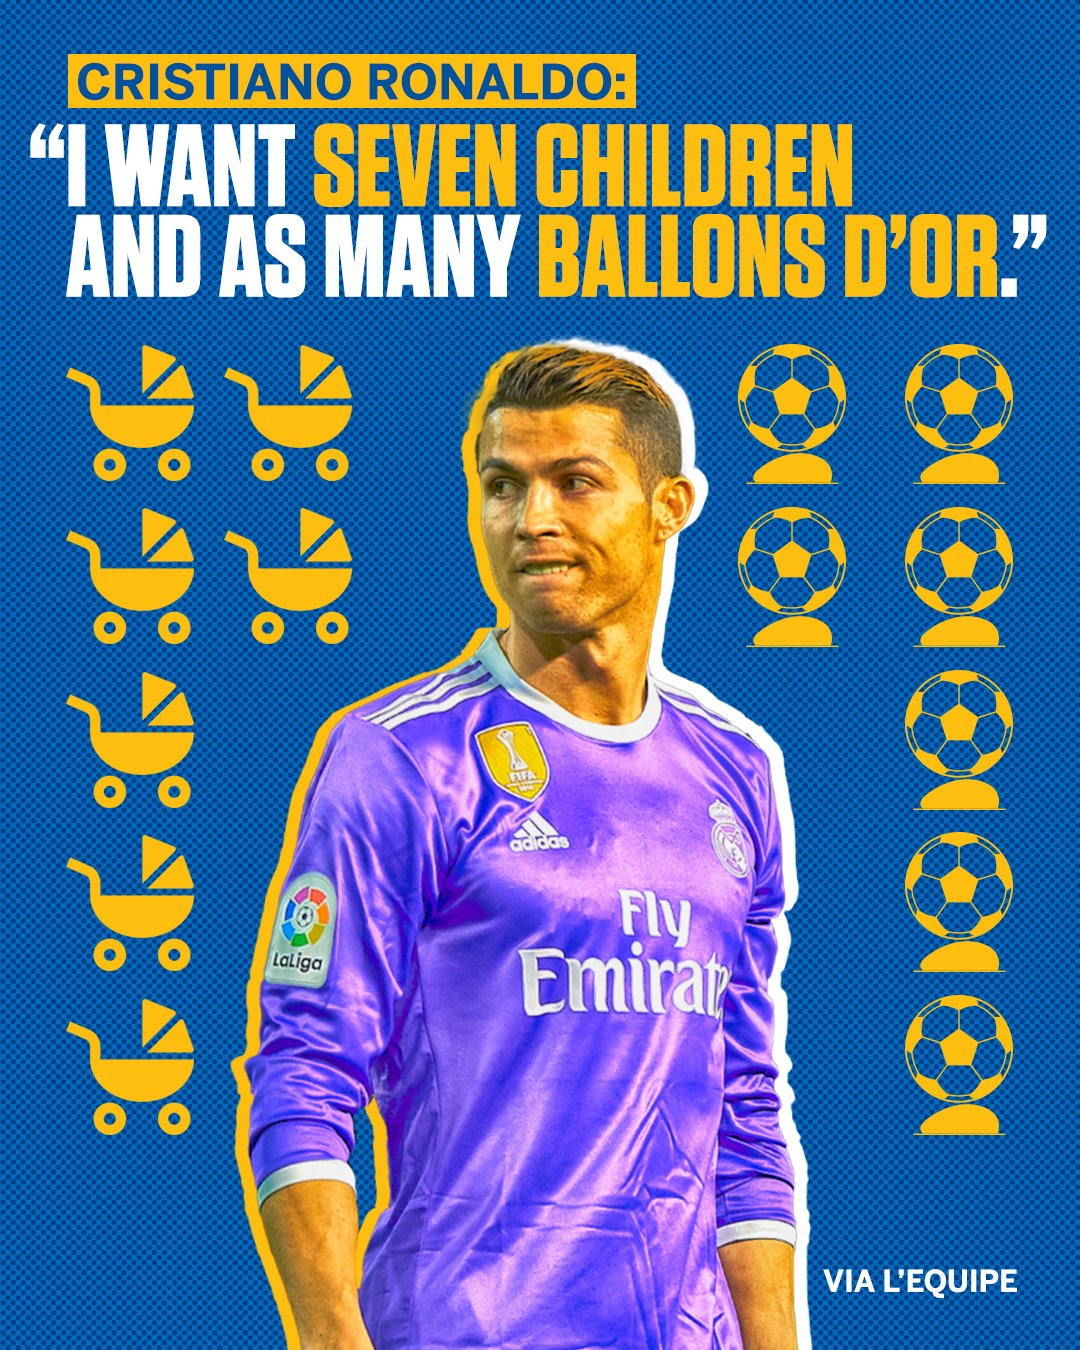 Ronaldo had this to say after the birth of his fourth child, a daughter named Alana Martina. https://t.co/BiYCqzPmdf